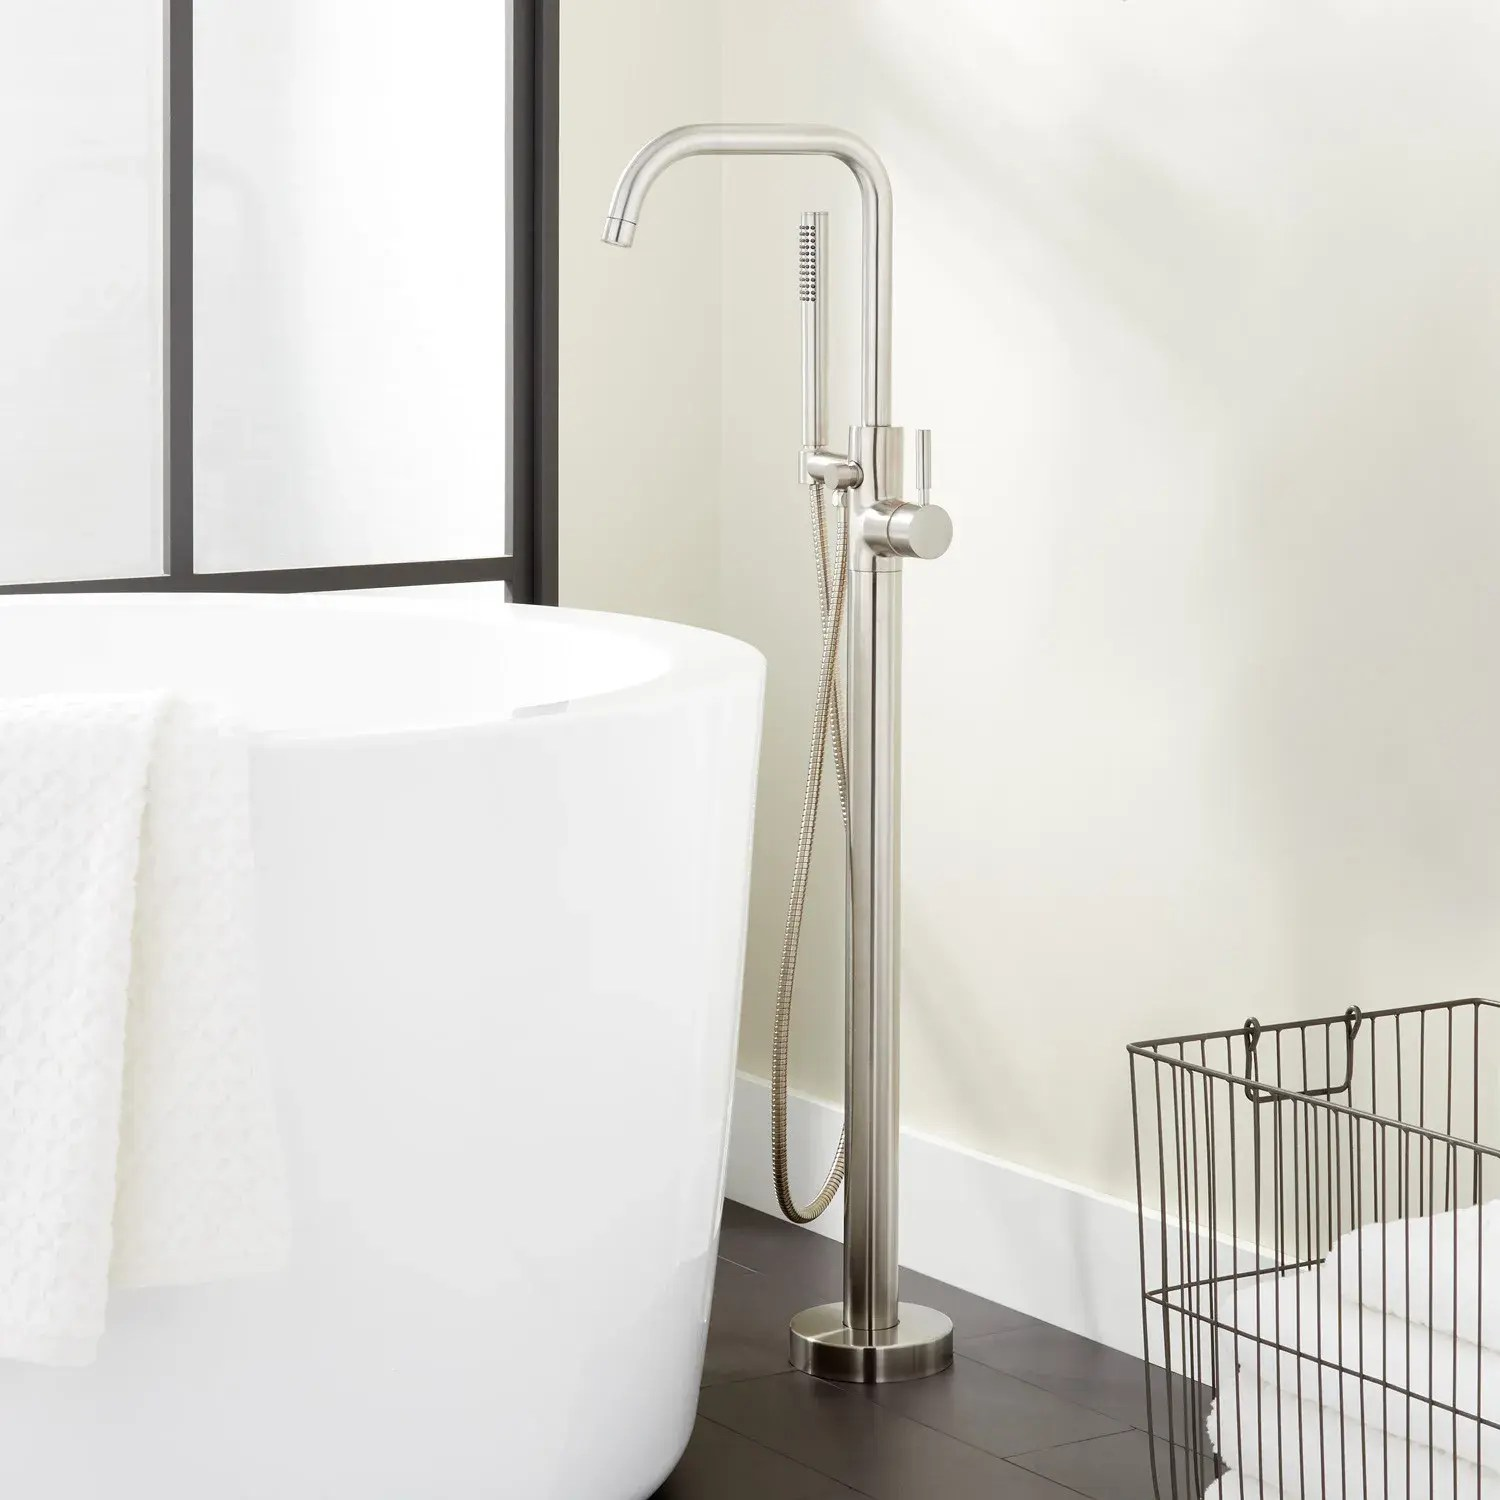 edenton freestanding tub faucet with hand shower with water lines